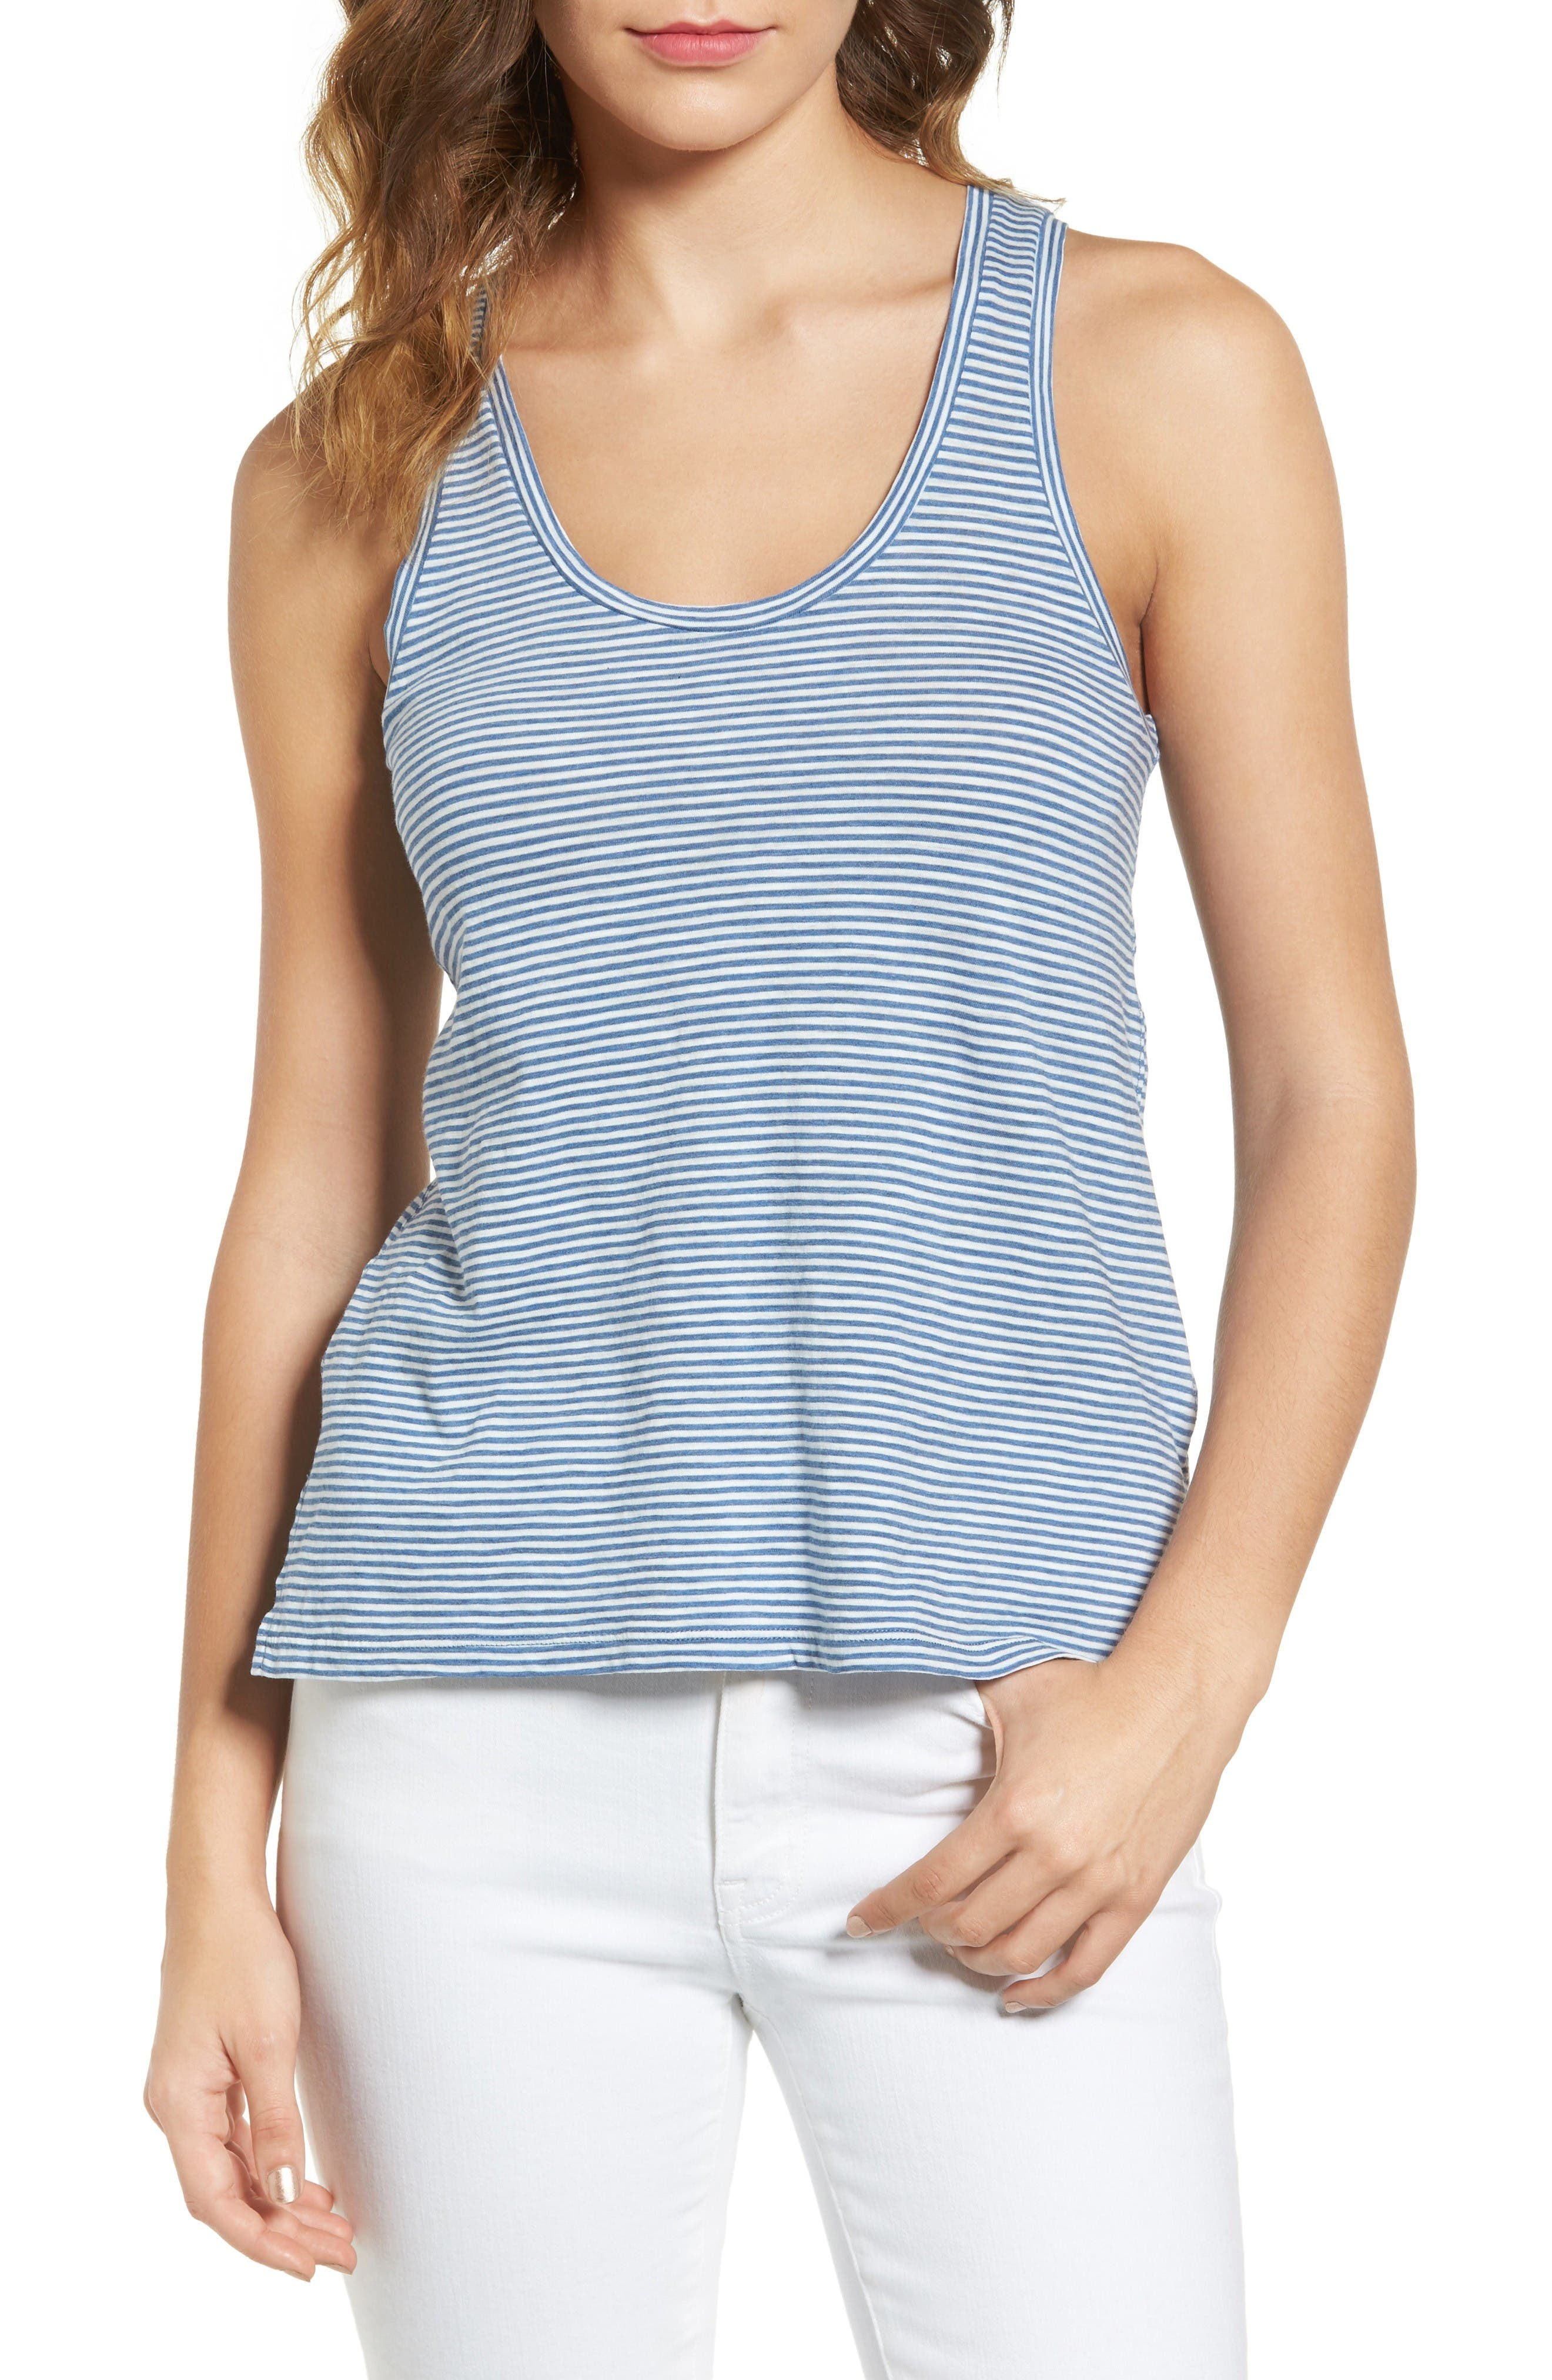 Madewell Stripe Whisper Cotton Tank